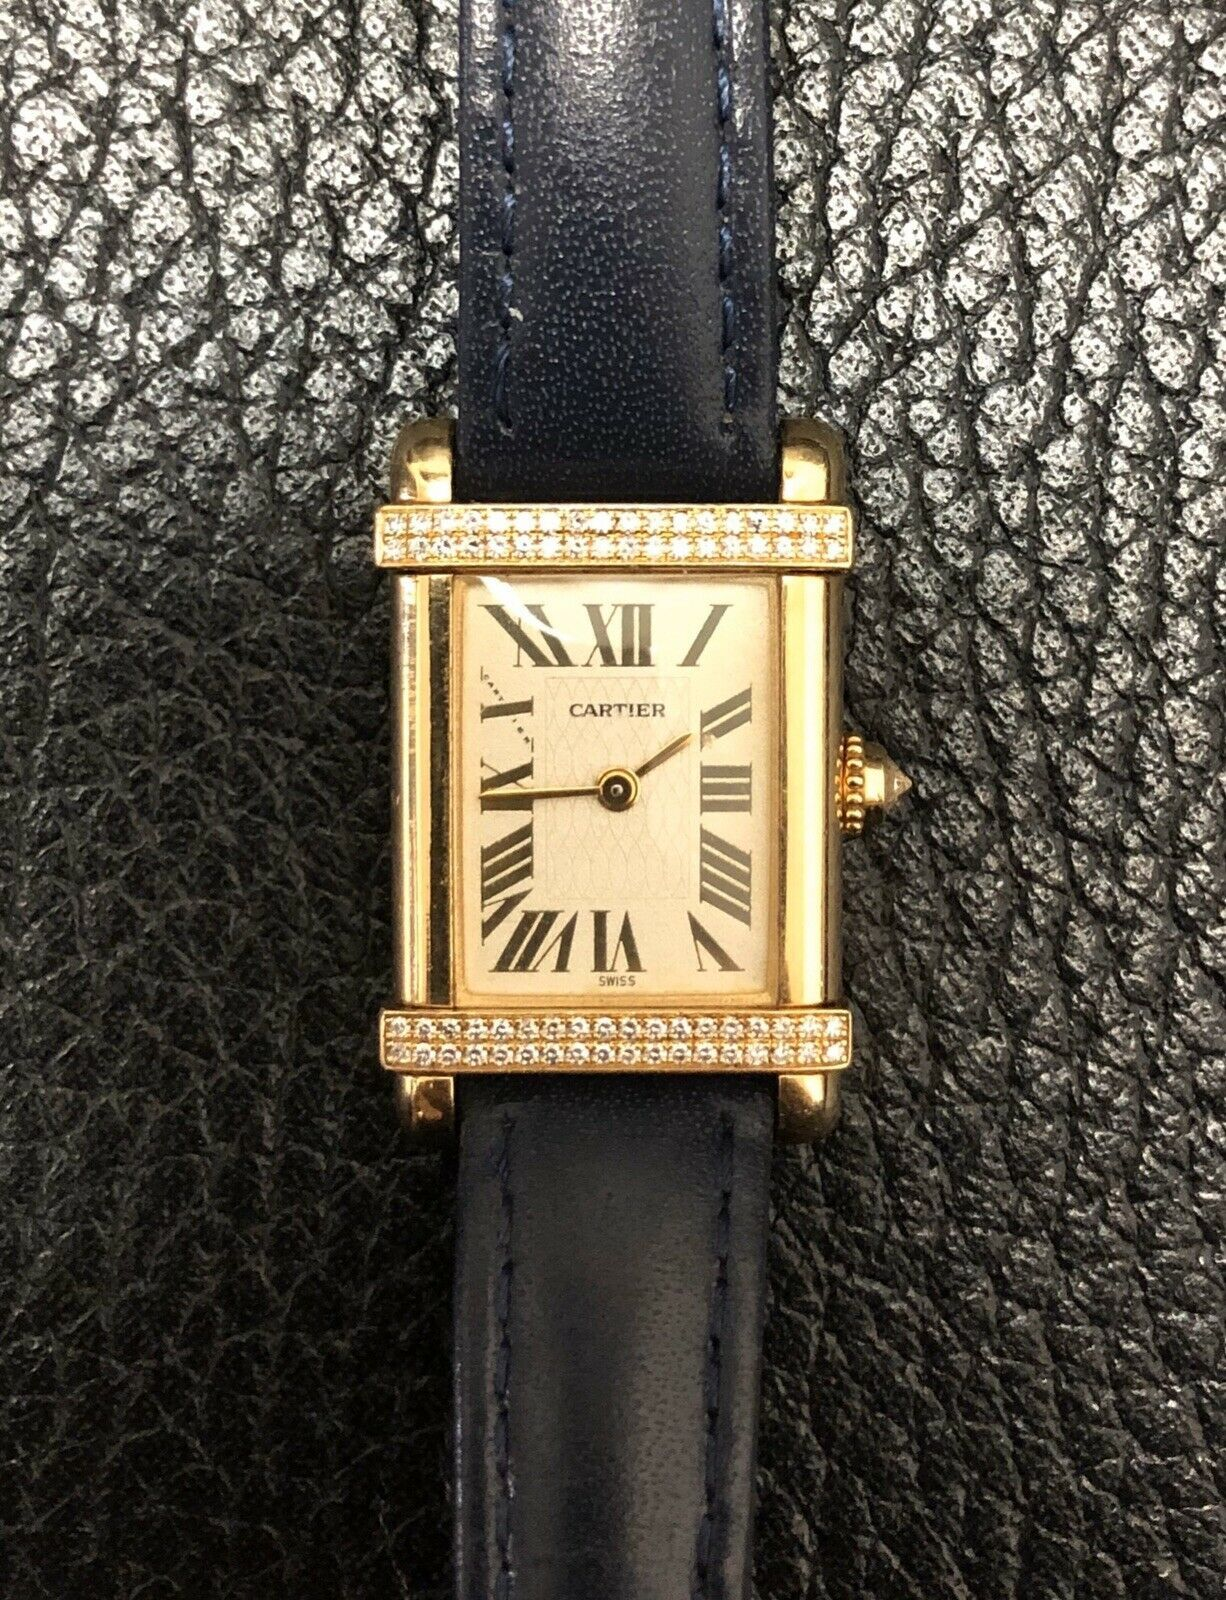 Pin On Cartier Watch